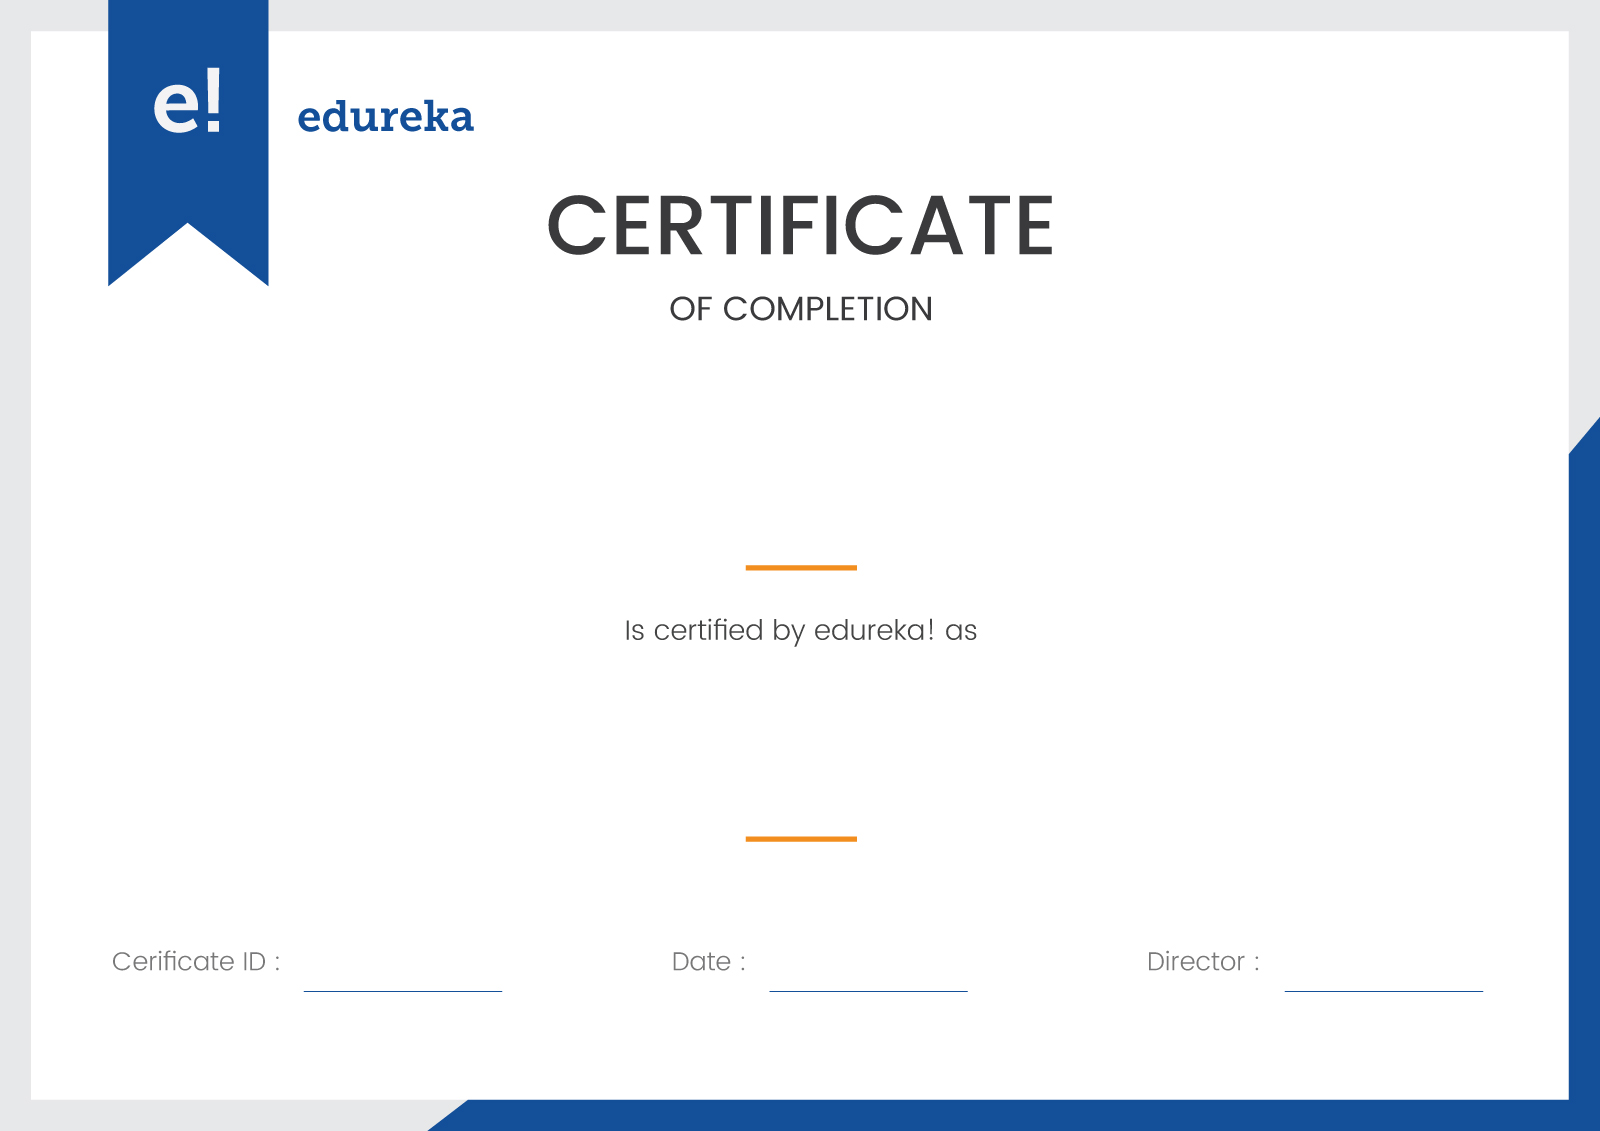 Magento online training magento certification course edureka sapmle certificate sapmle certificate 1betcityfo Choice Image